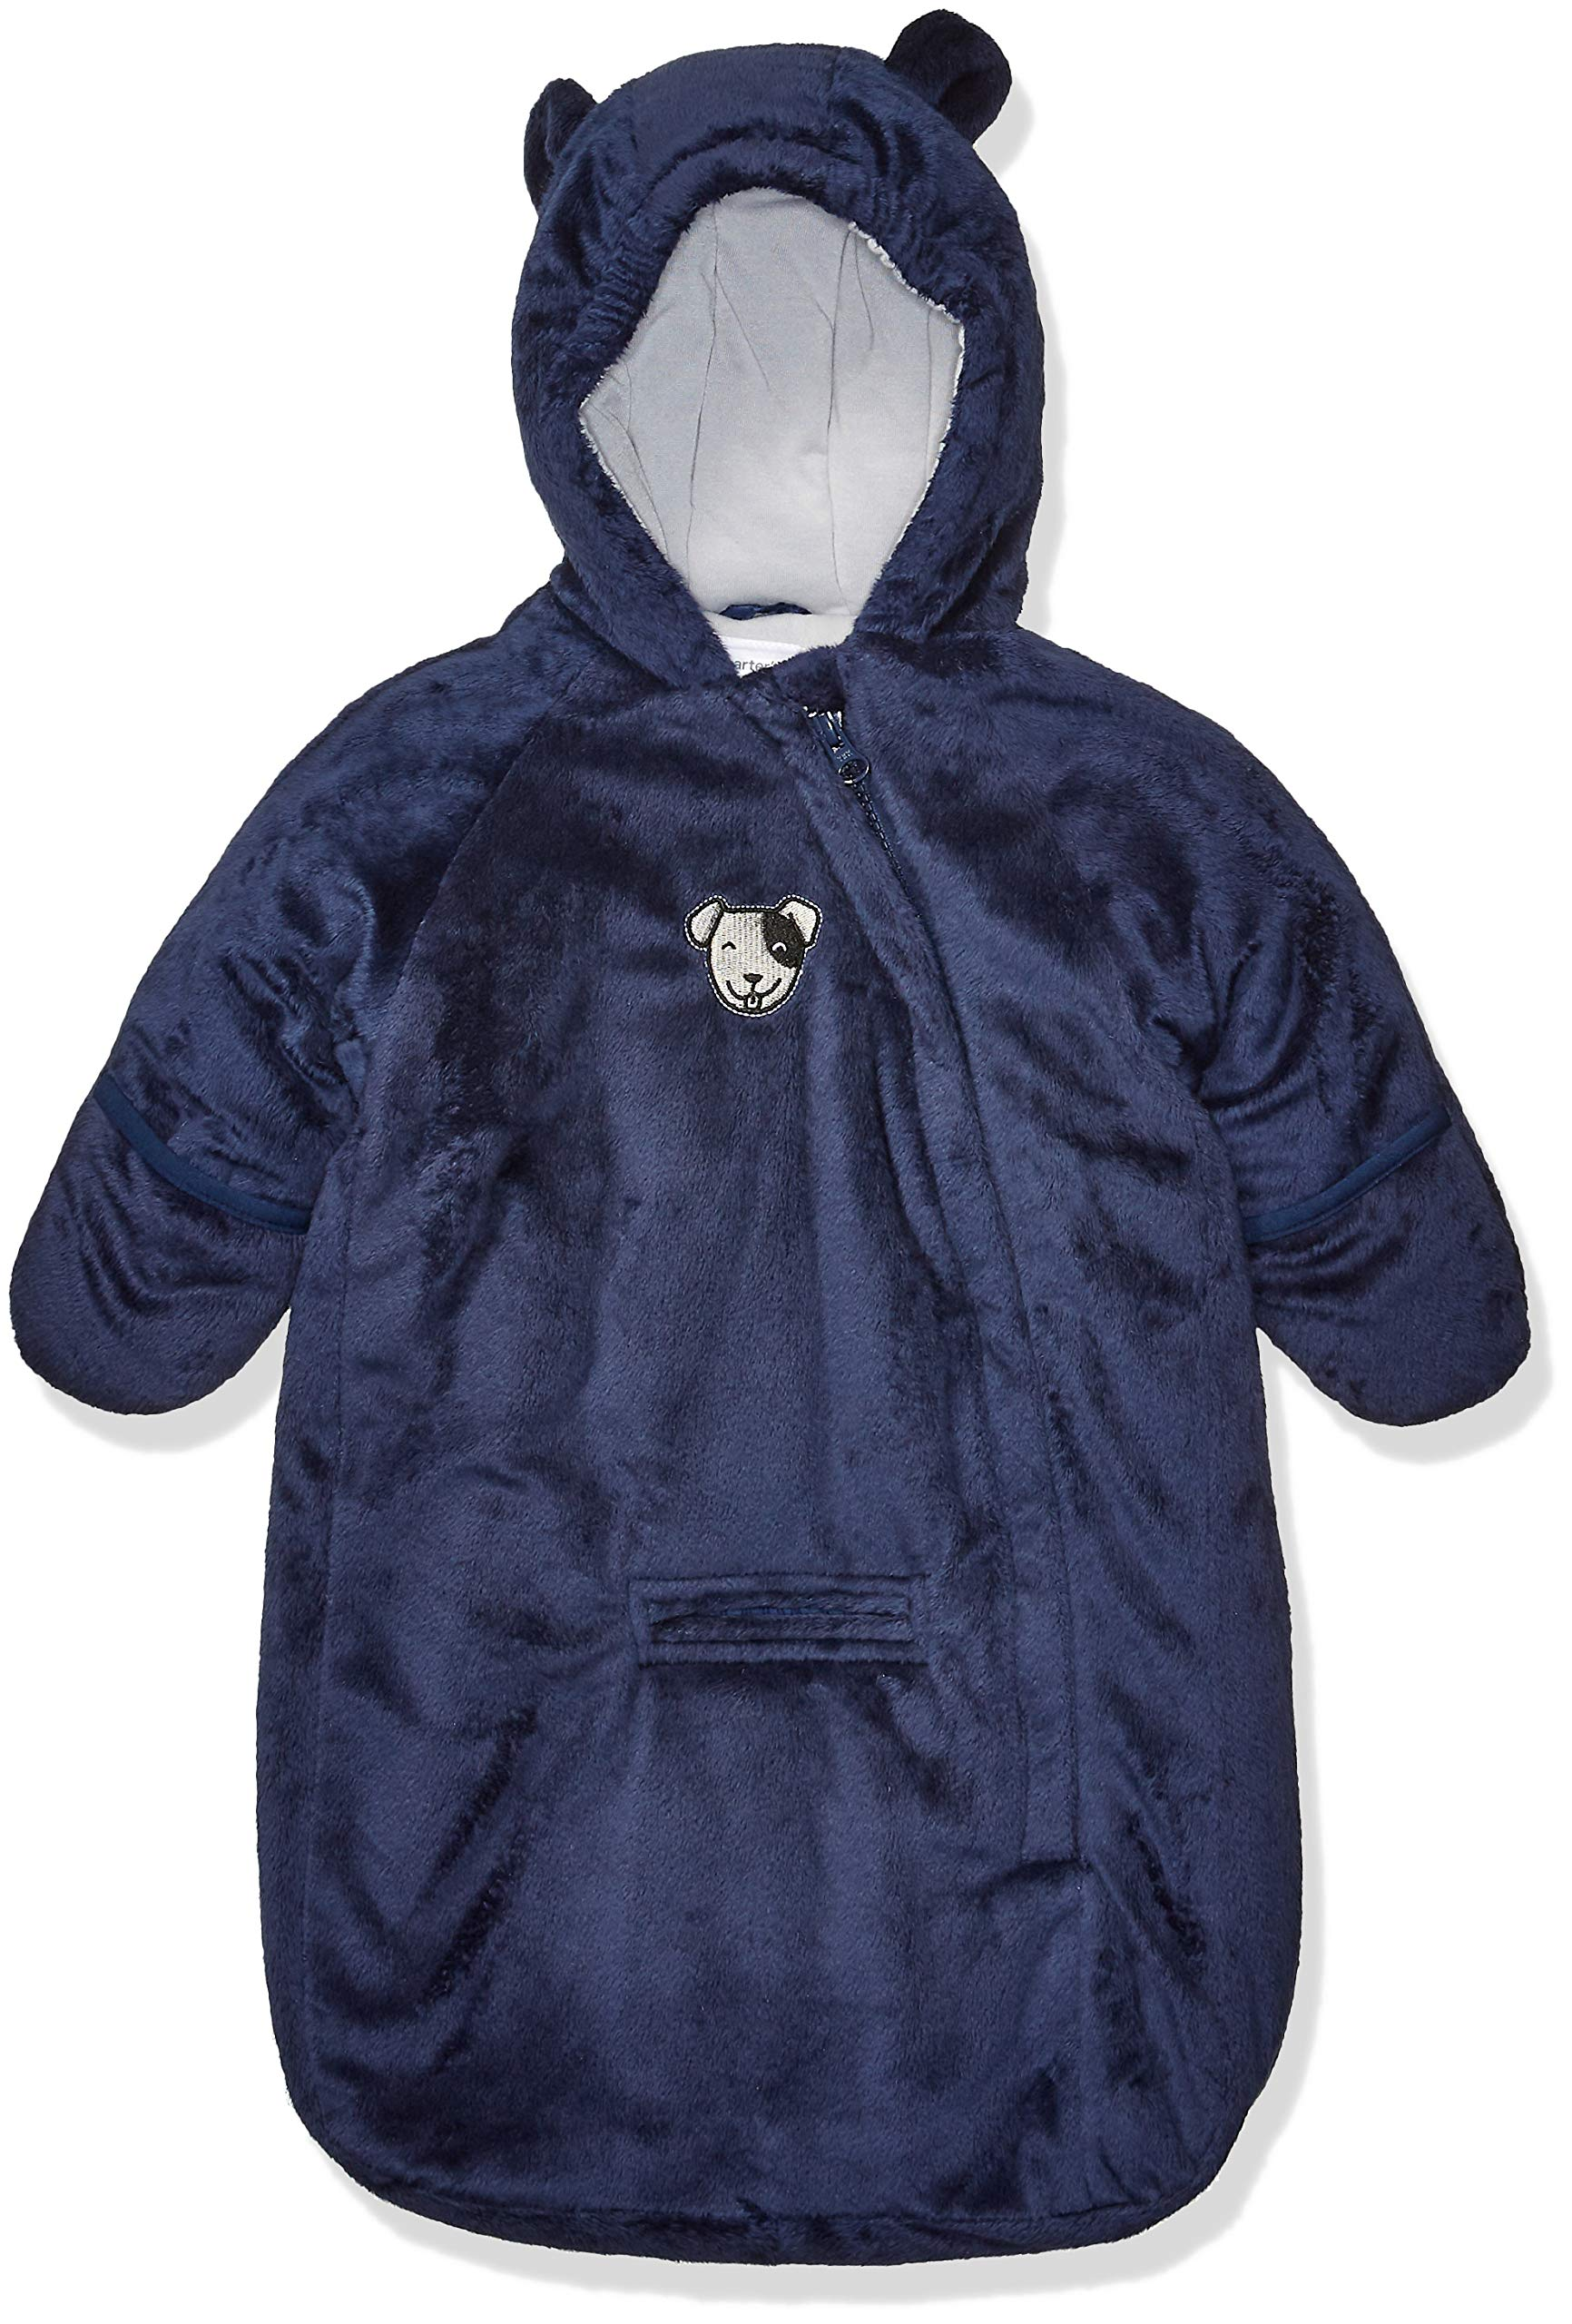 Carter's Baby Girls Bundle Up Cozy Pram with Ears, Navy Dog Bag, 0/6 Months by Carter's